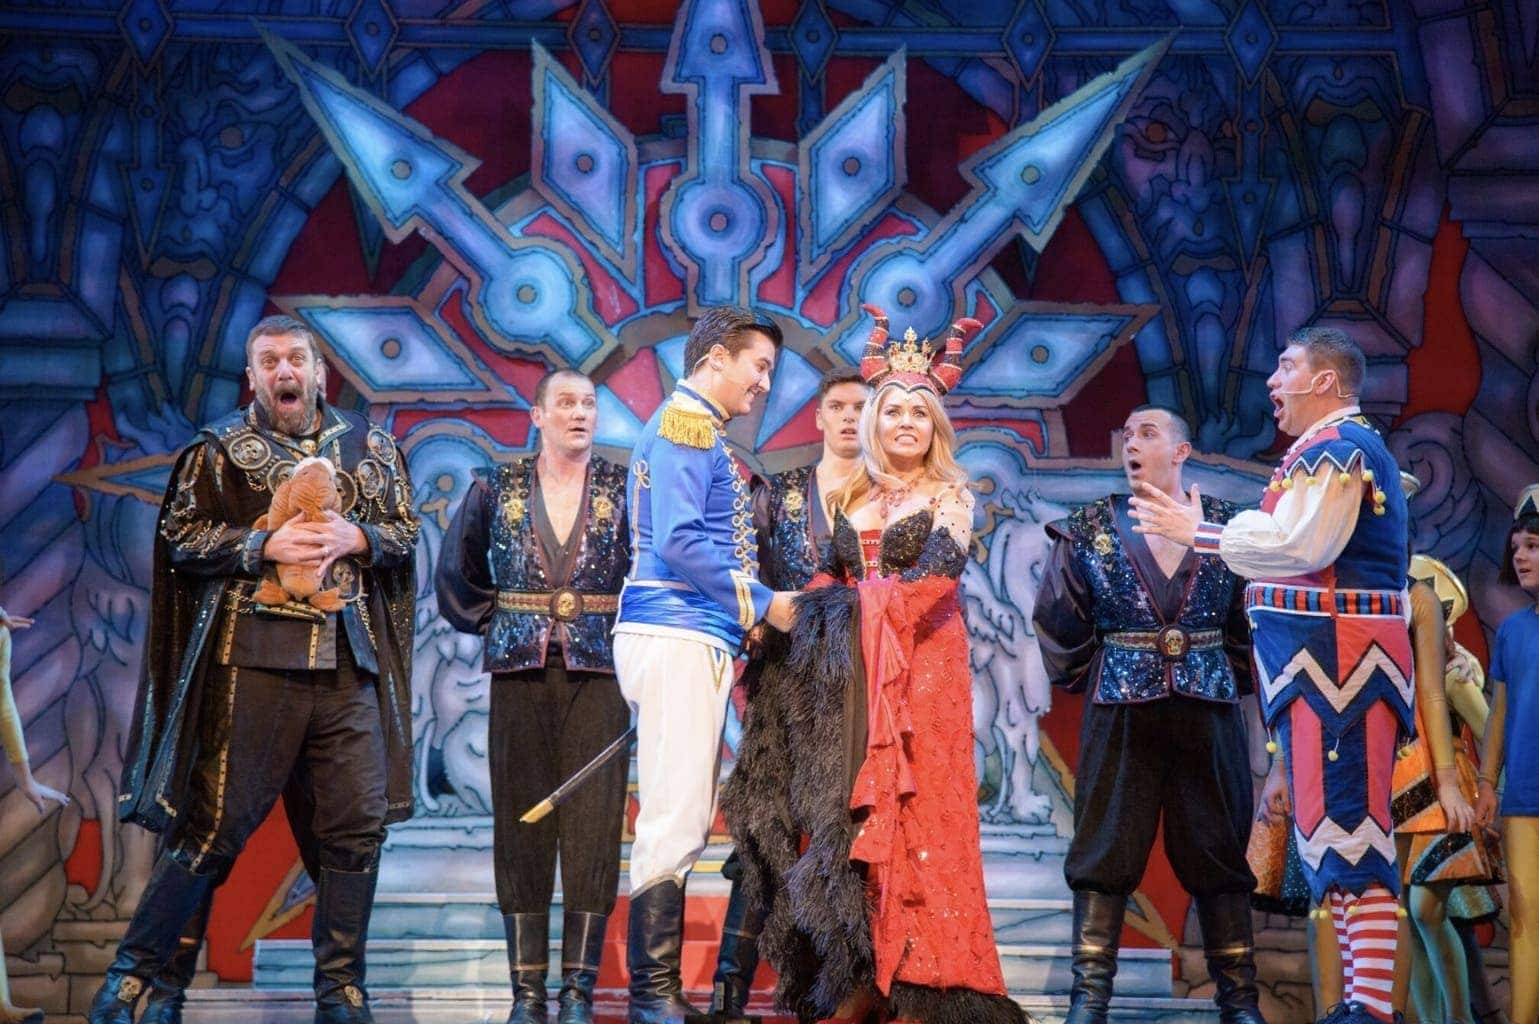 Review of Snow White Pantomime, Liverpool Empire